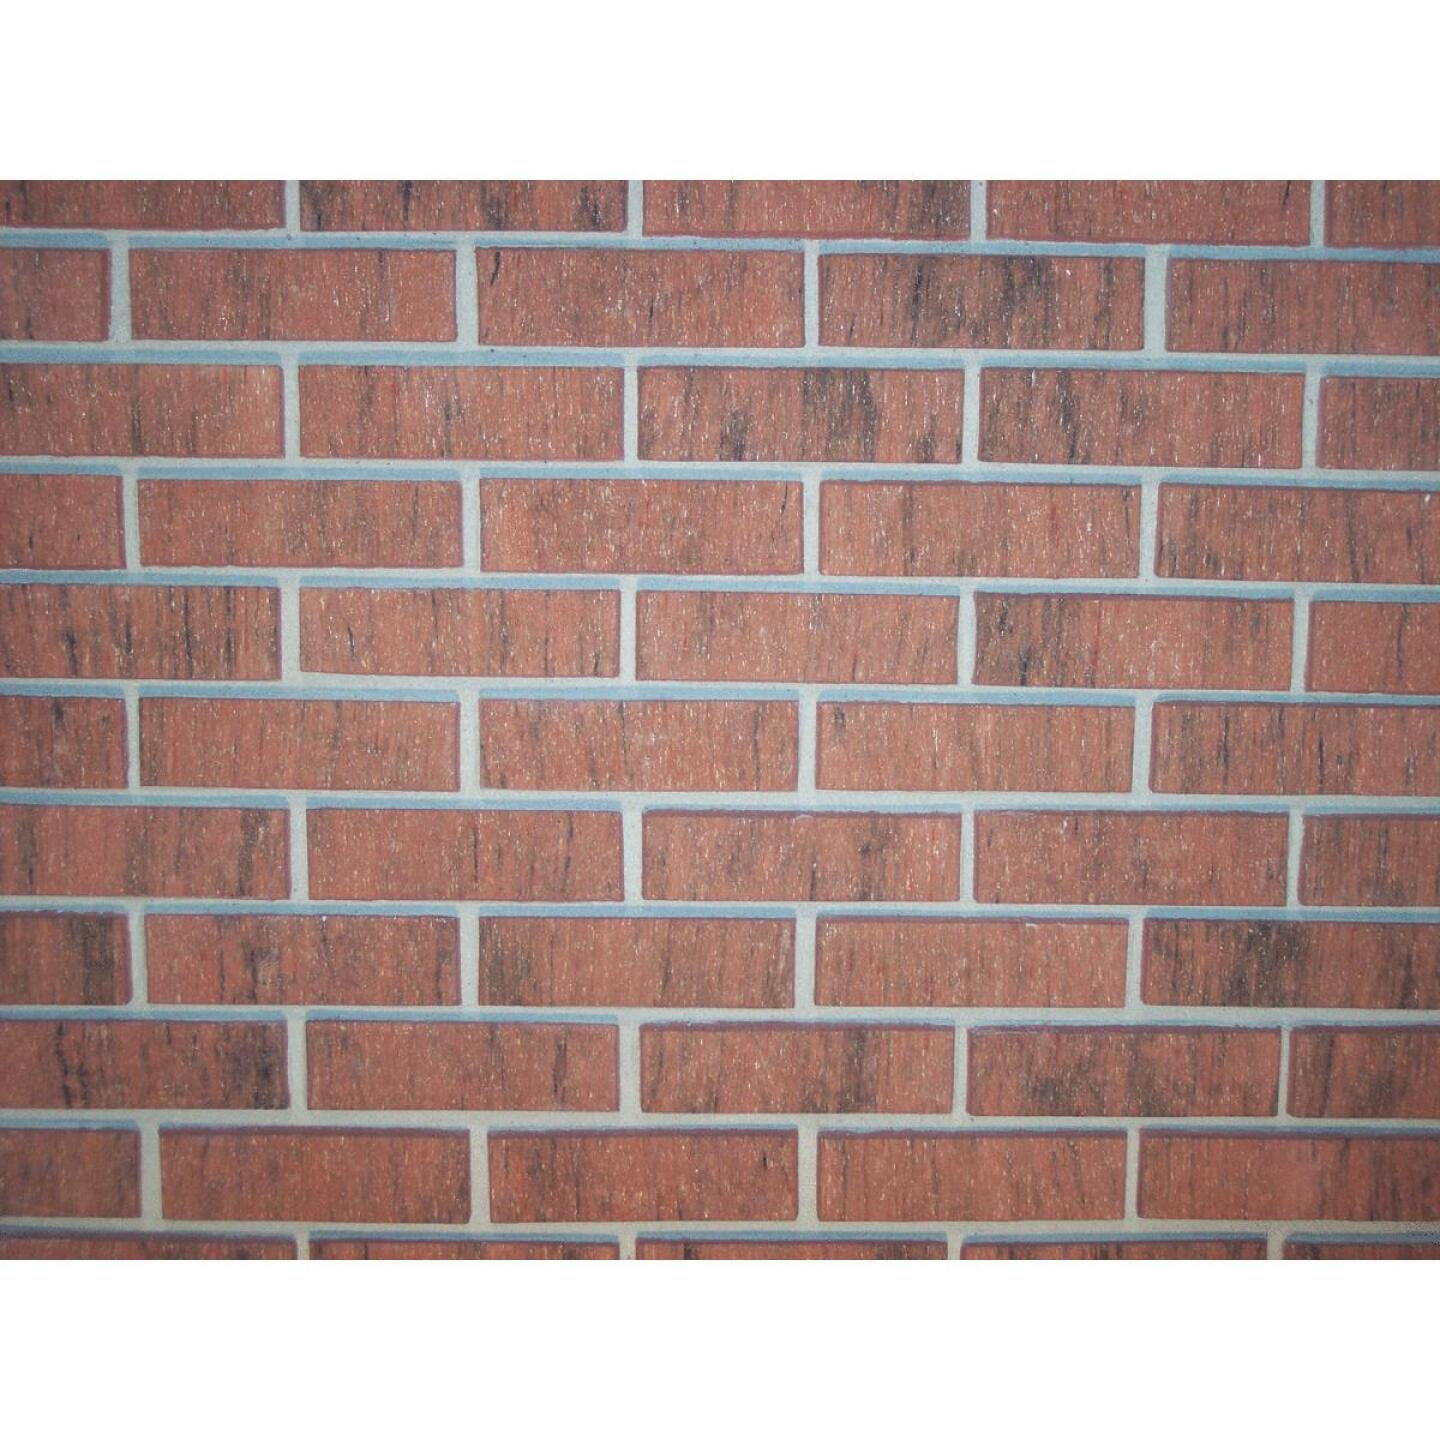 Z-Brick Americana 2-1/4 In. x 8 In. Red Facing Brick Image 1